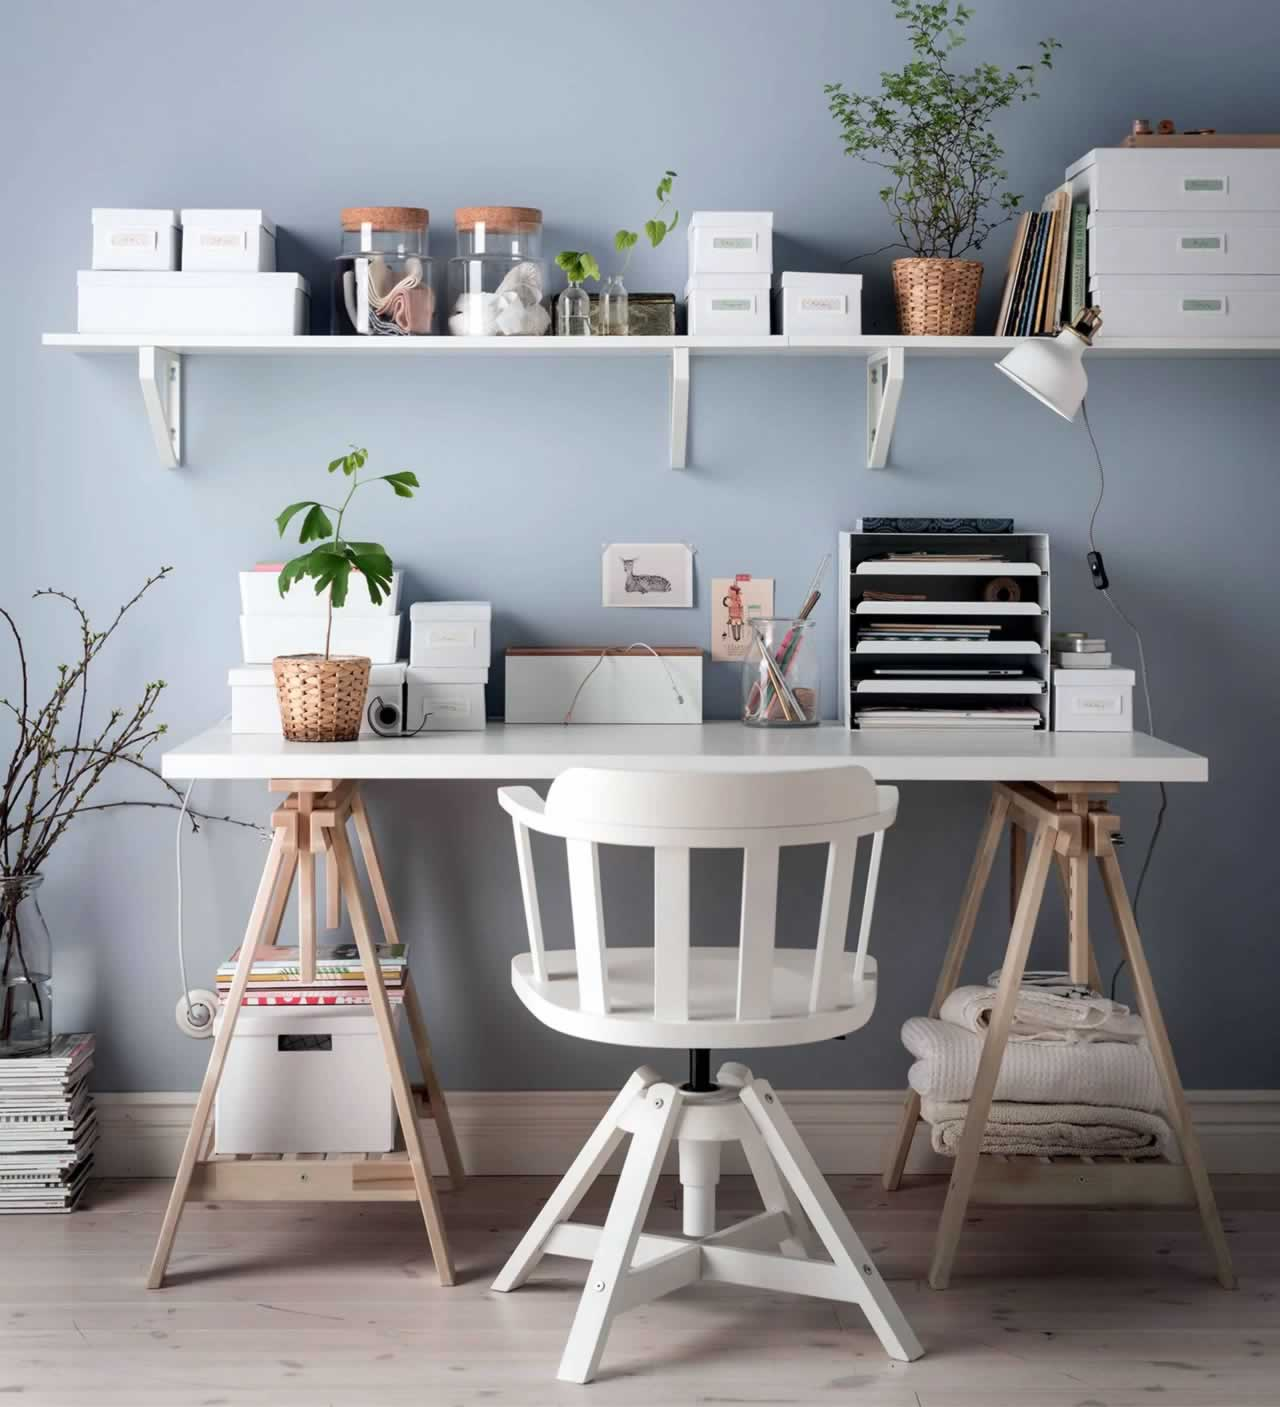 IKEA Ideas - 3 ways to organise your desk